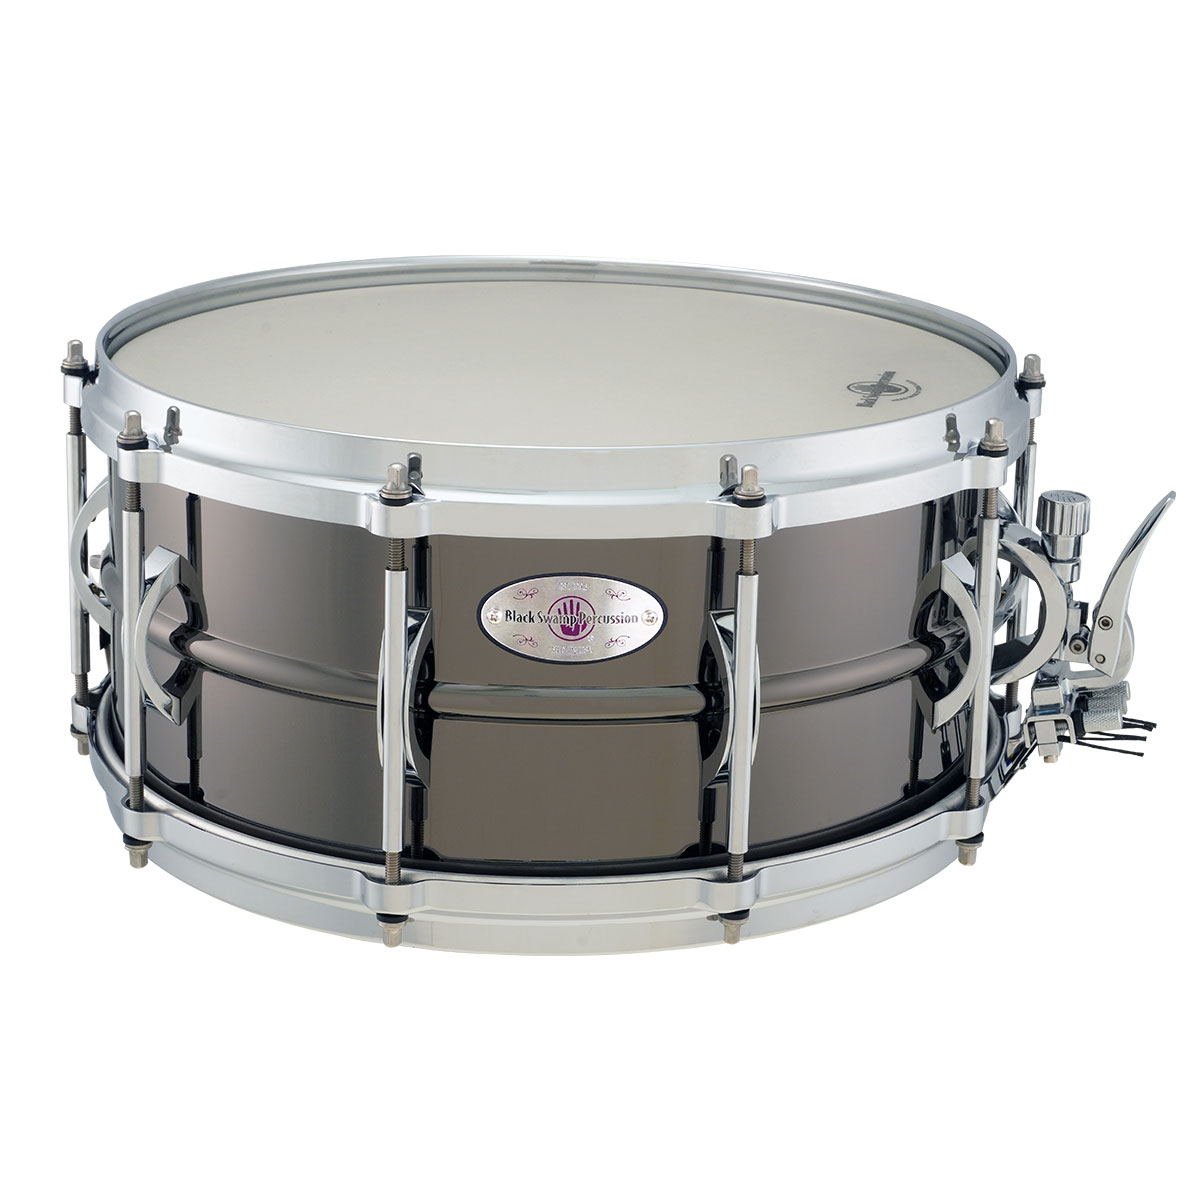 "Black Swamp 6.5"" x 14"" SoundArt Brass Concert Snare Drum"